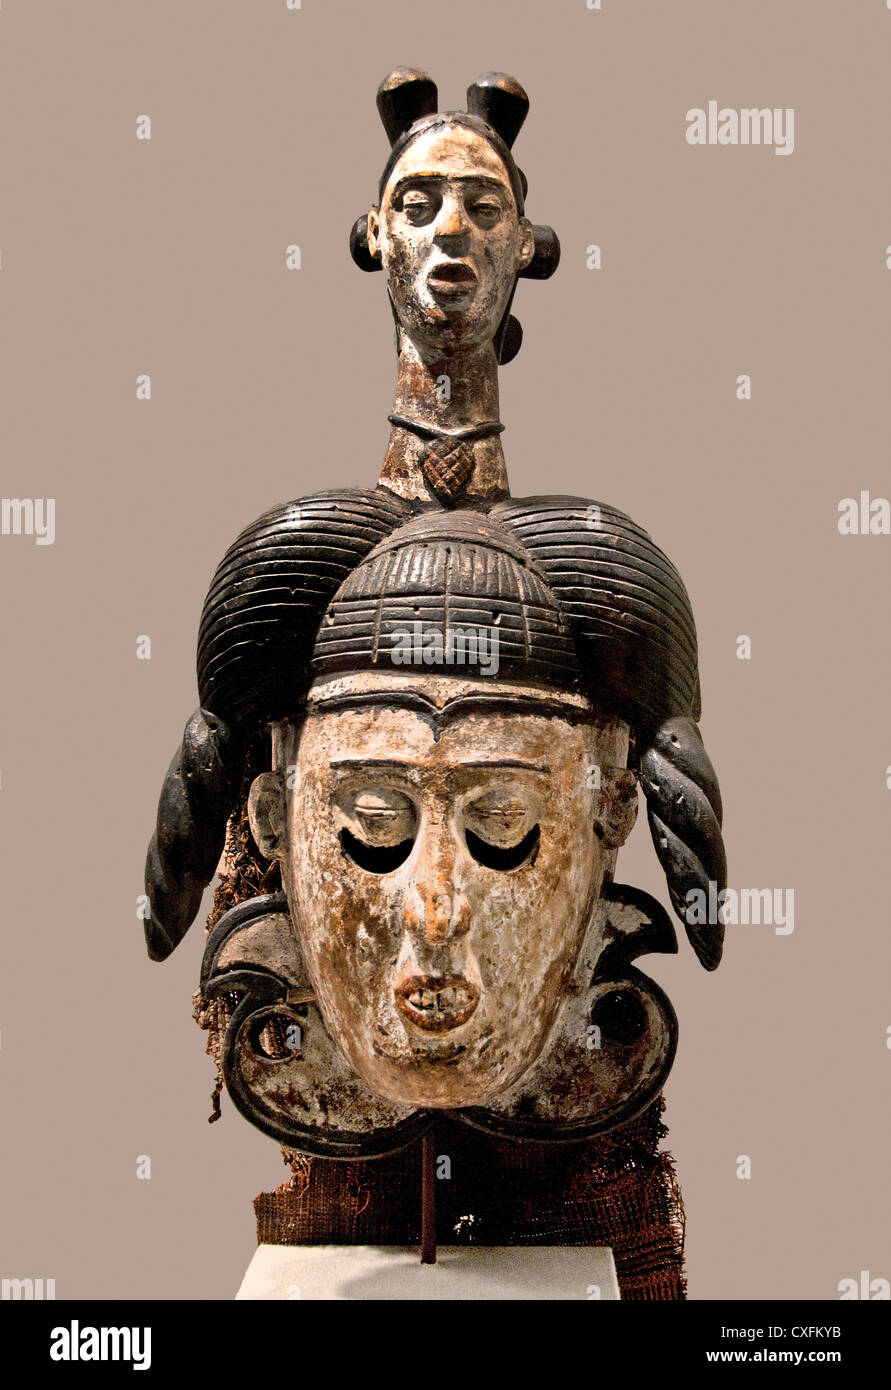 White Faced Mask 19th–20th century Nigeria Ibibio peoples Africa - Stock Image